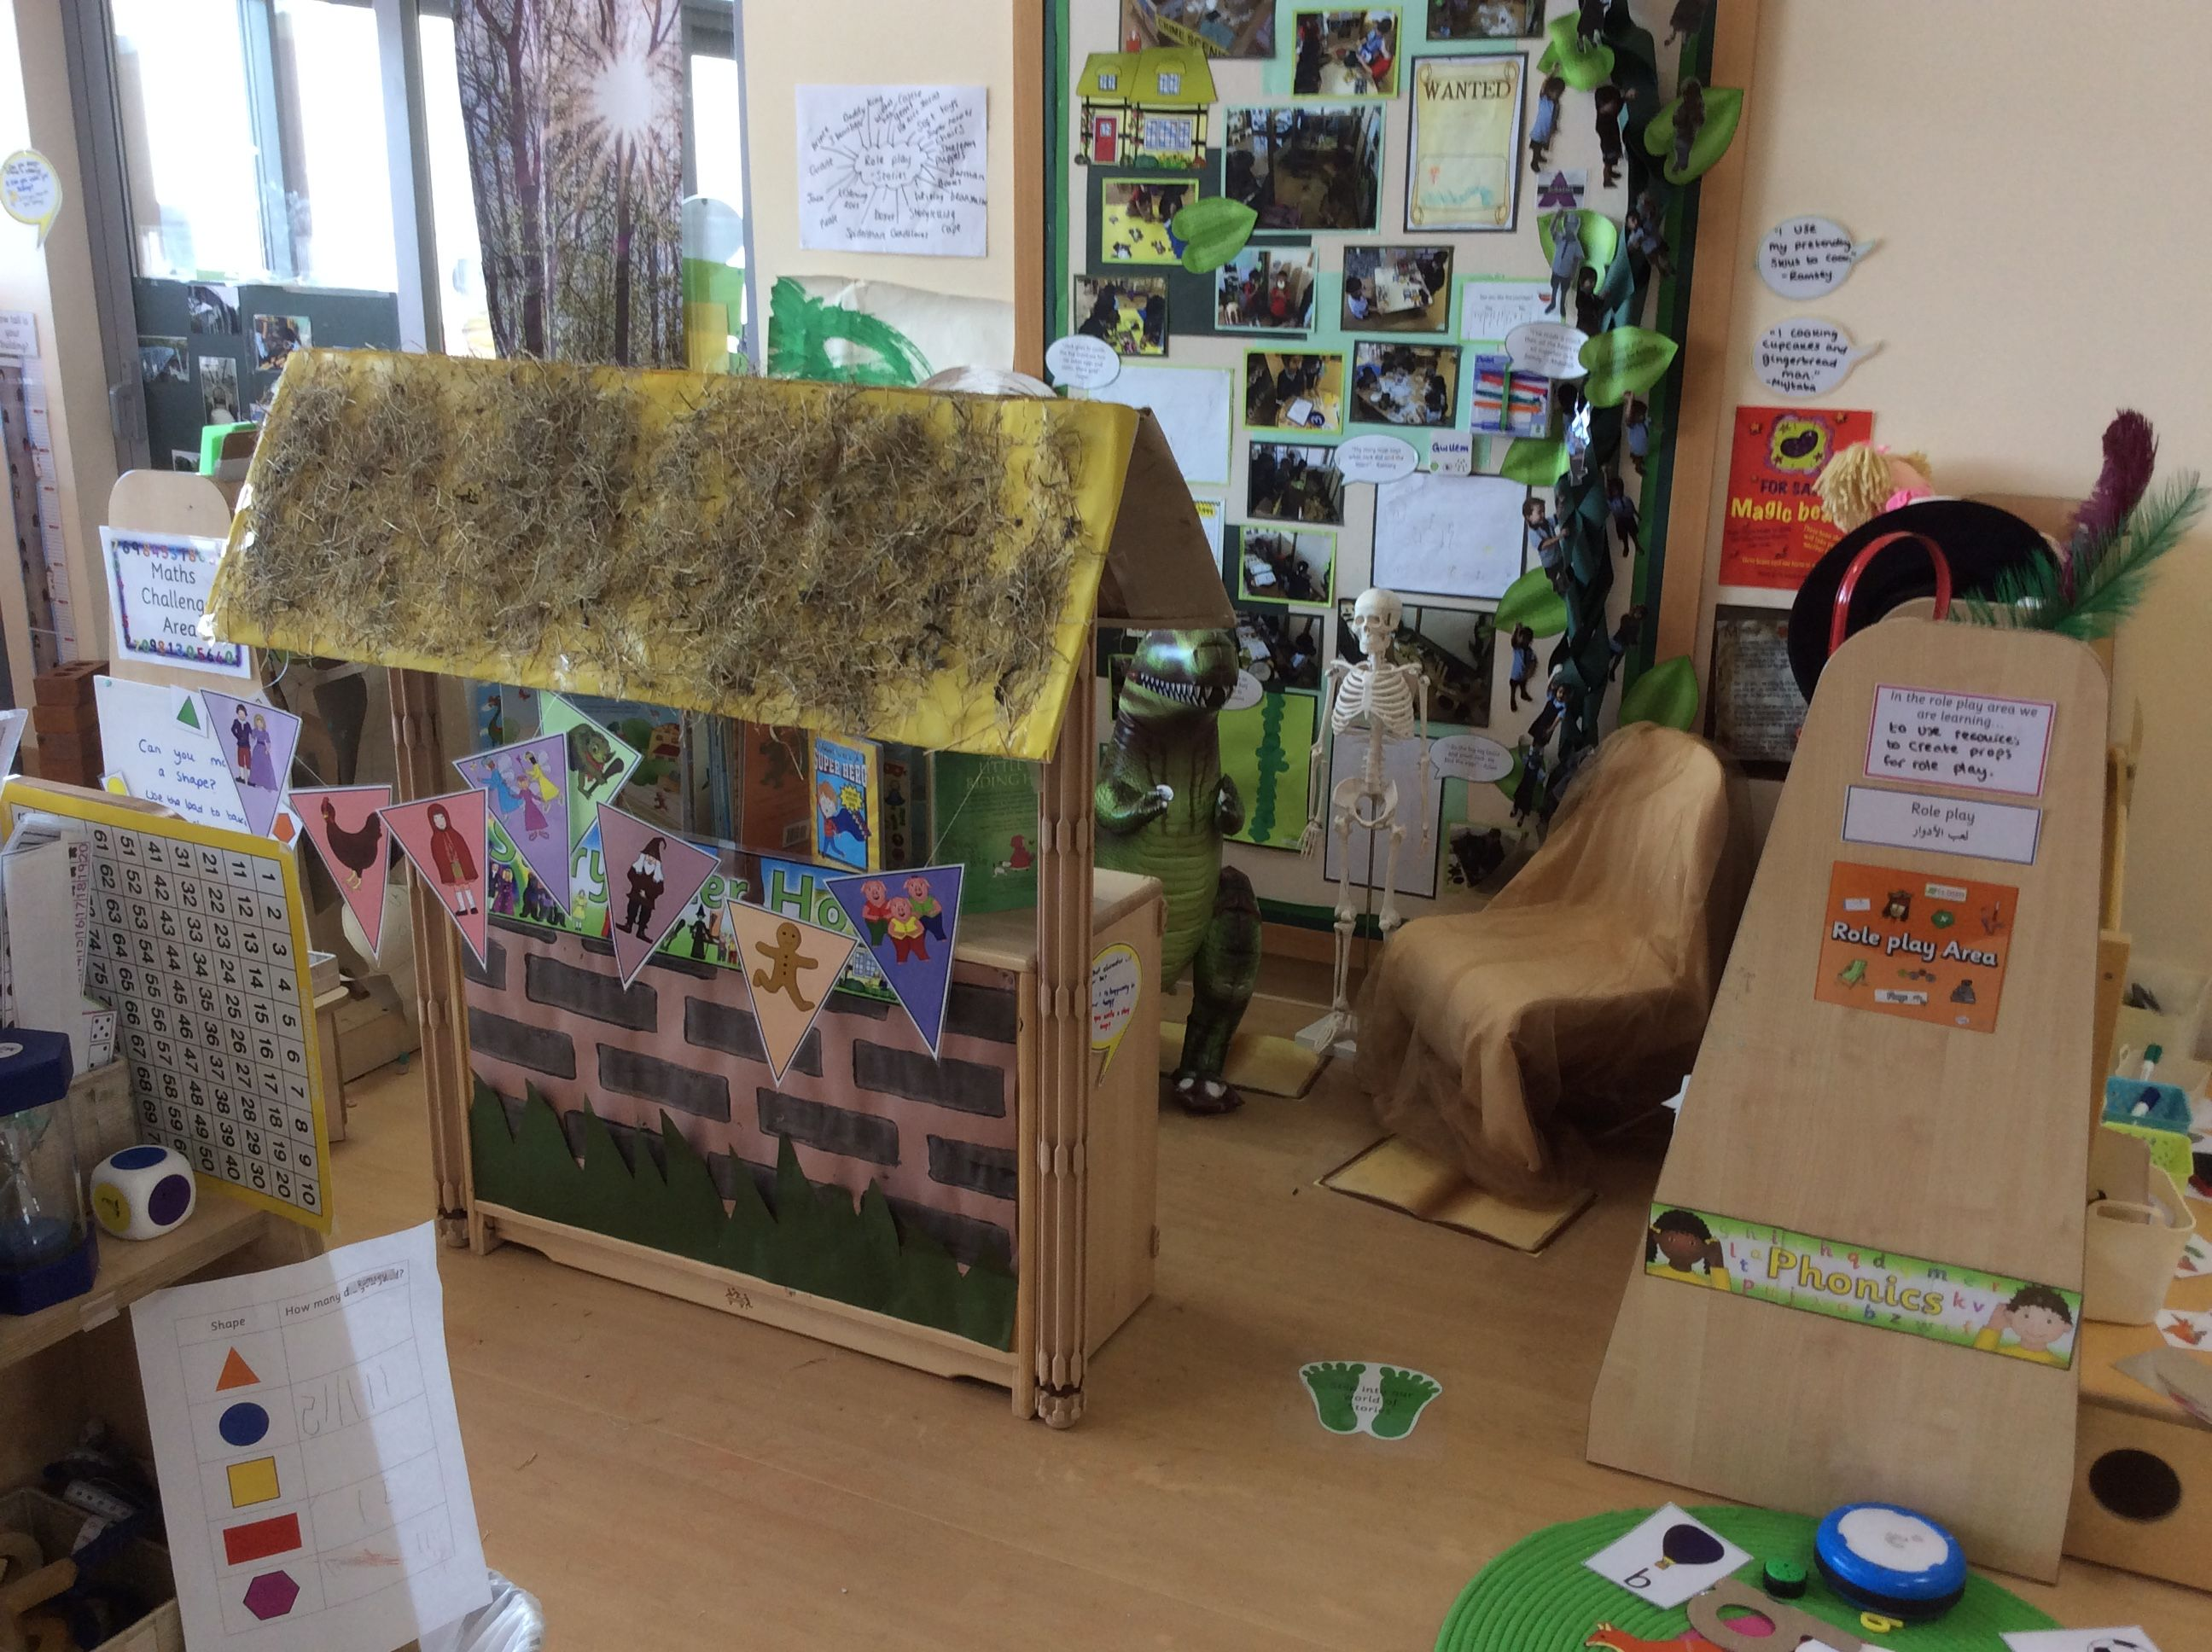 Storytelling cottage role play area with various props which were requested by the children. Children used the props to make up and act out their own stories. EYFS, FS1, Storytelling, Stories, Traditional tales, Role Play